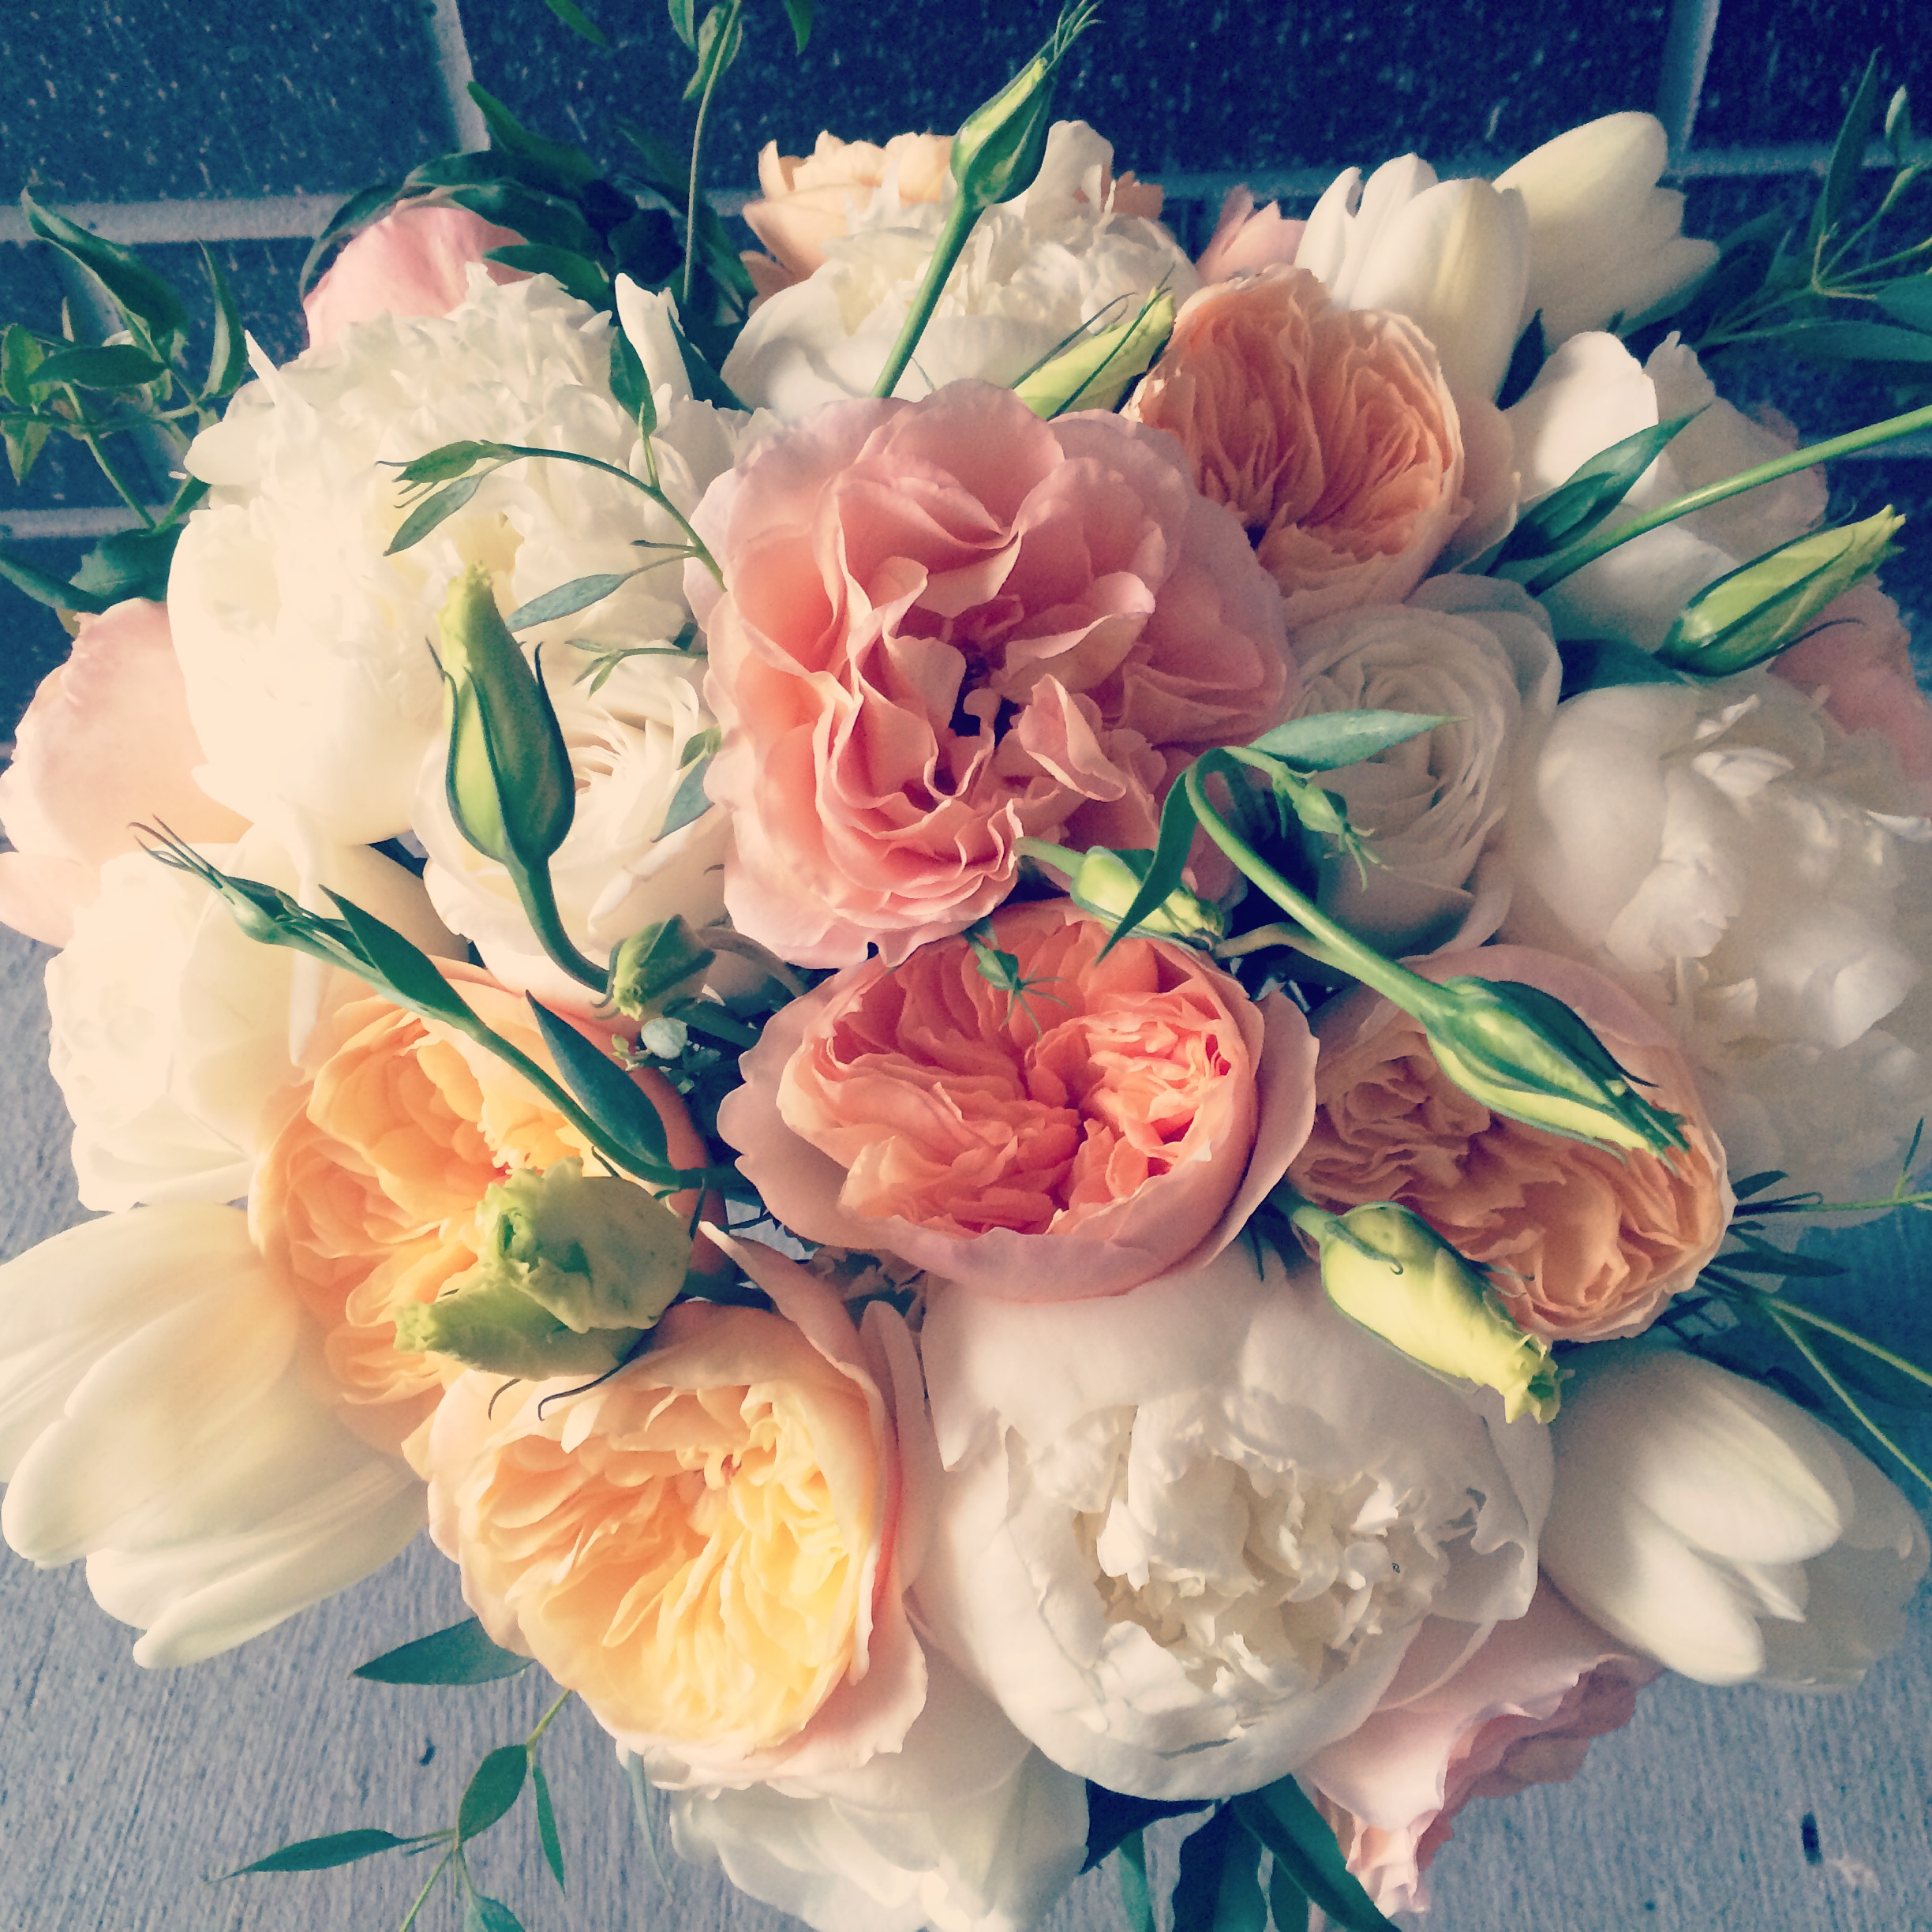 And then it FINALLY rained the day we made this fluffy bridal bouquet.